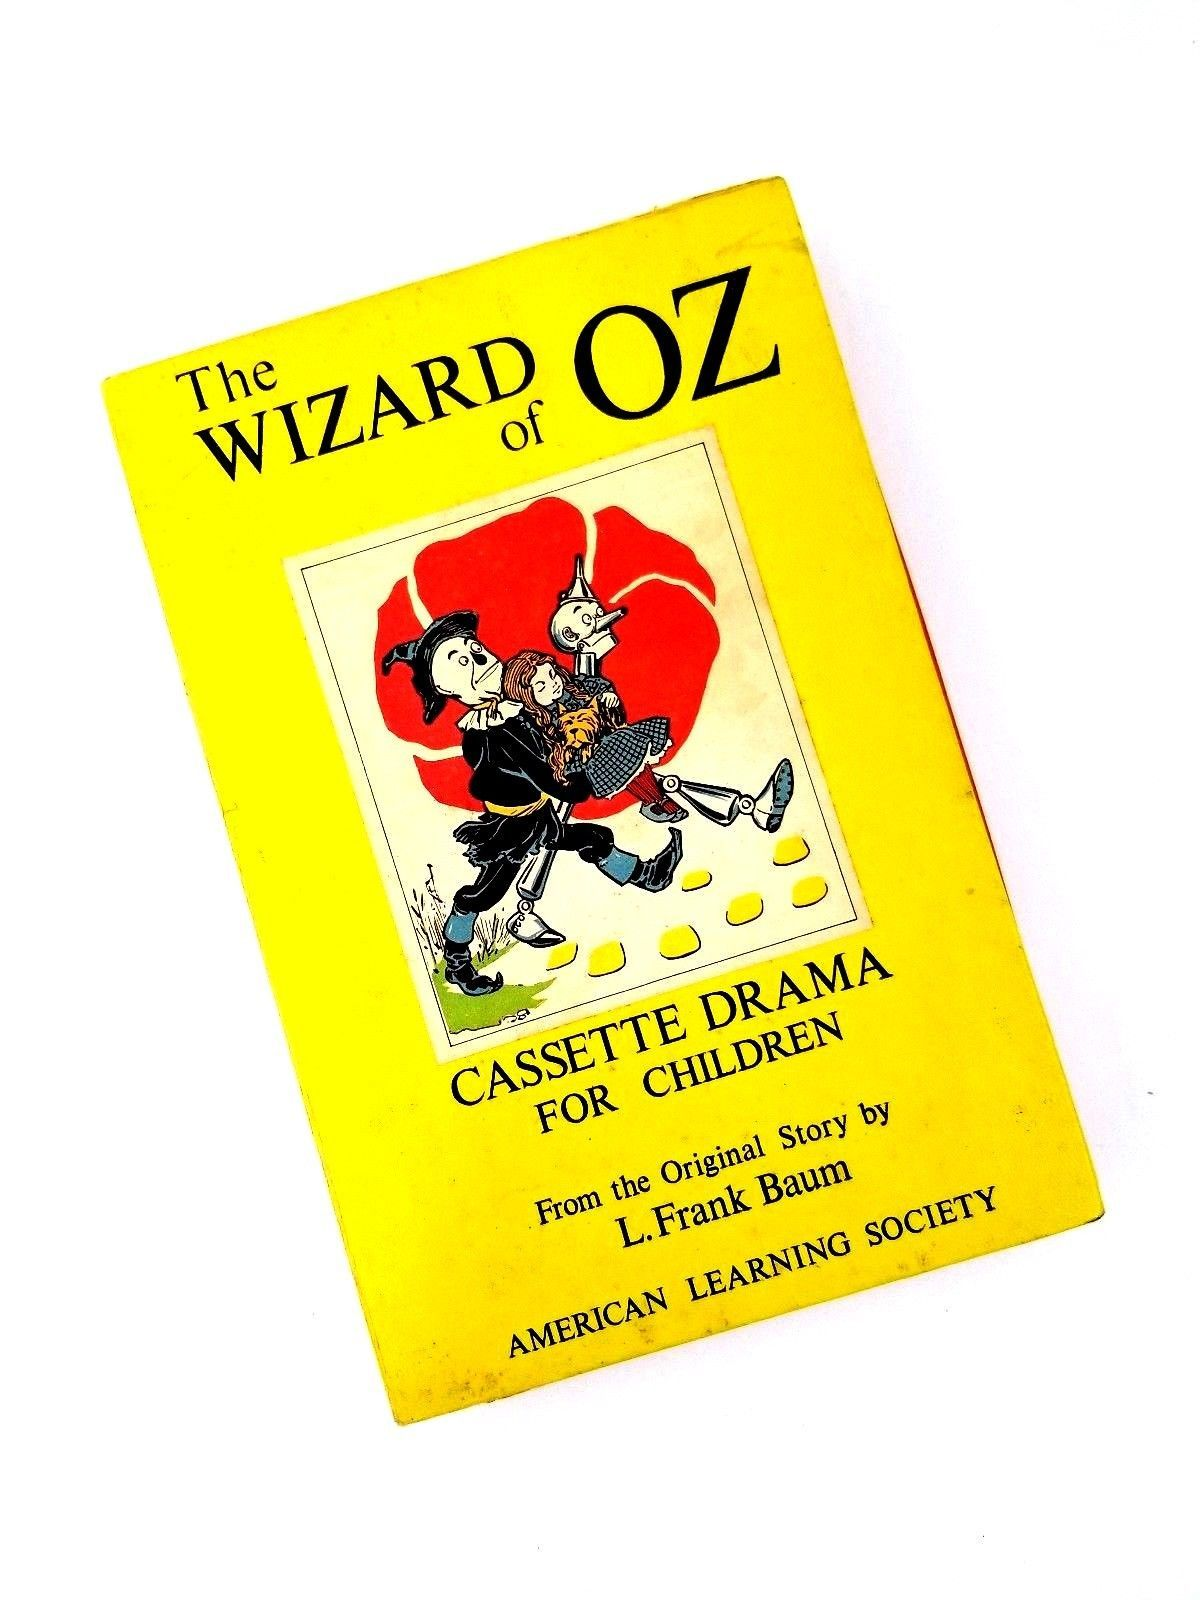 The Wizard of OZ Cassette Drama for Children by L. Frank Baum American Learning